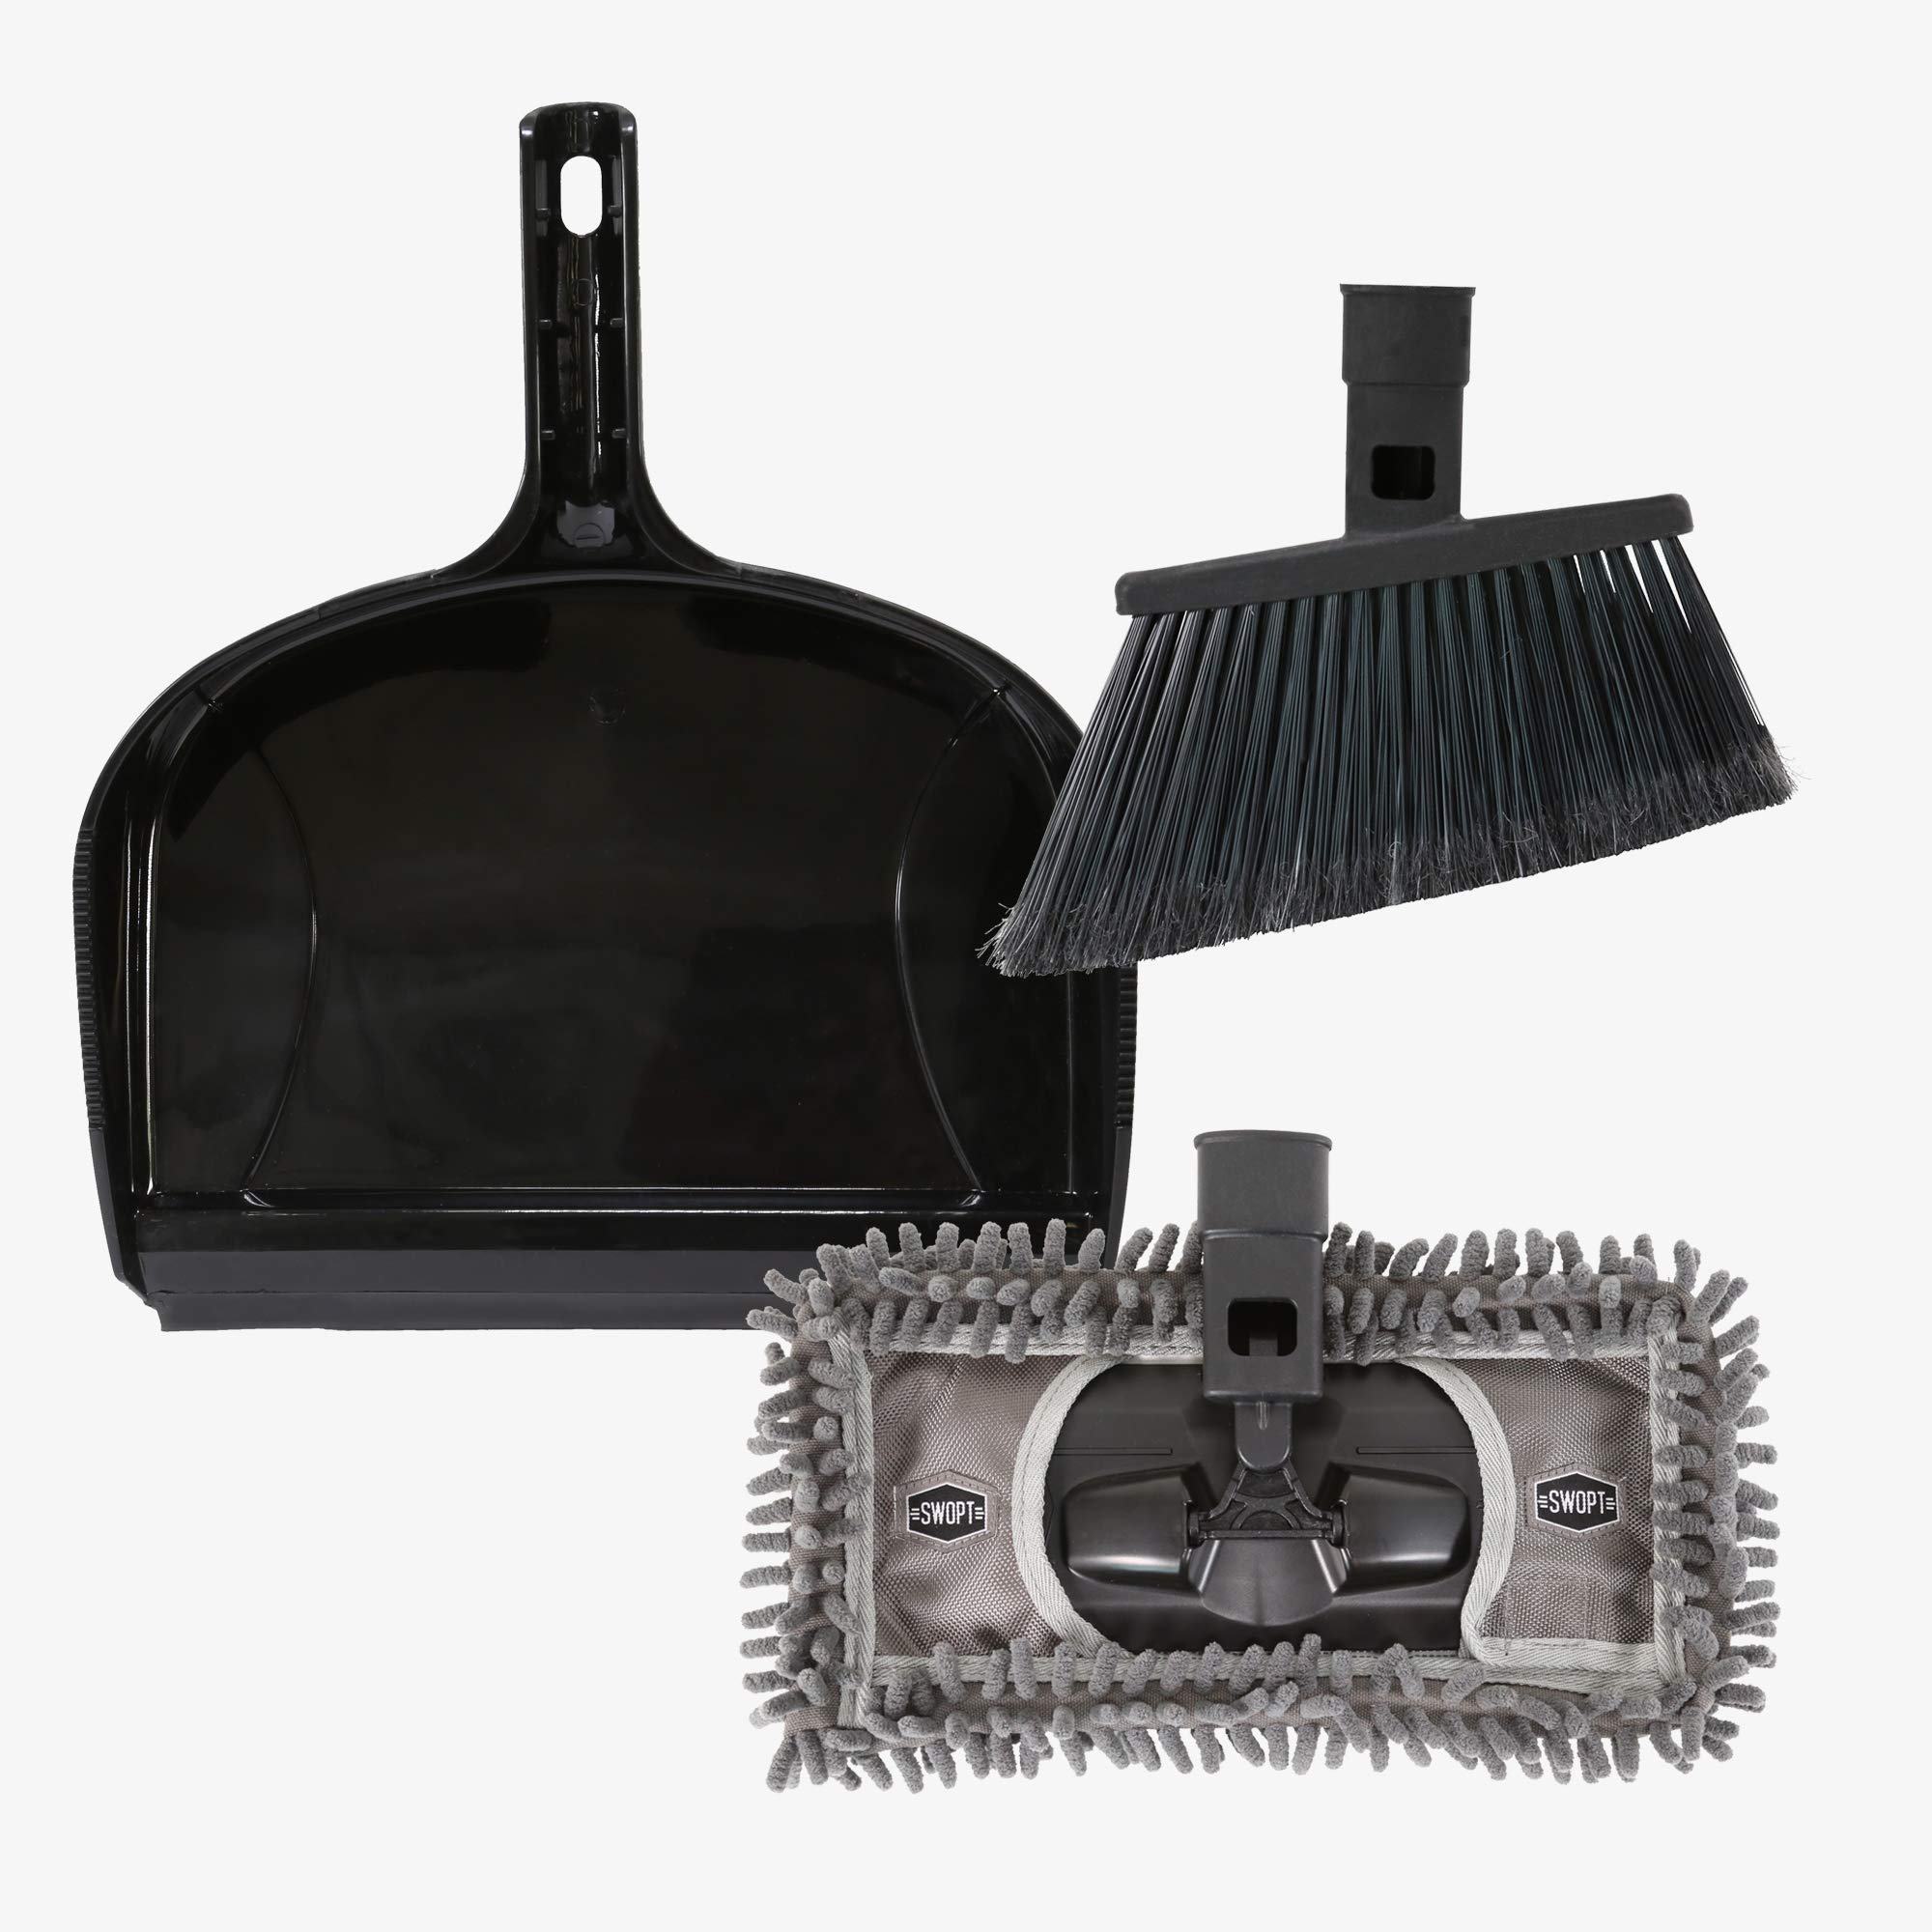 Swopt 5315C2 SWOPT 12 Dust Pan Cleaning Set, Indoor Cleaning Set Includes SWOPT Standard Angle Broom, 12 Dust Mop and Plastic Dust Pan